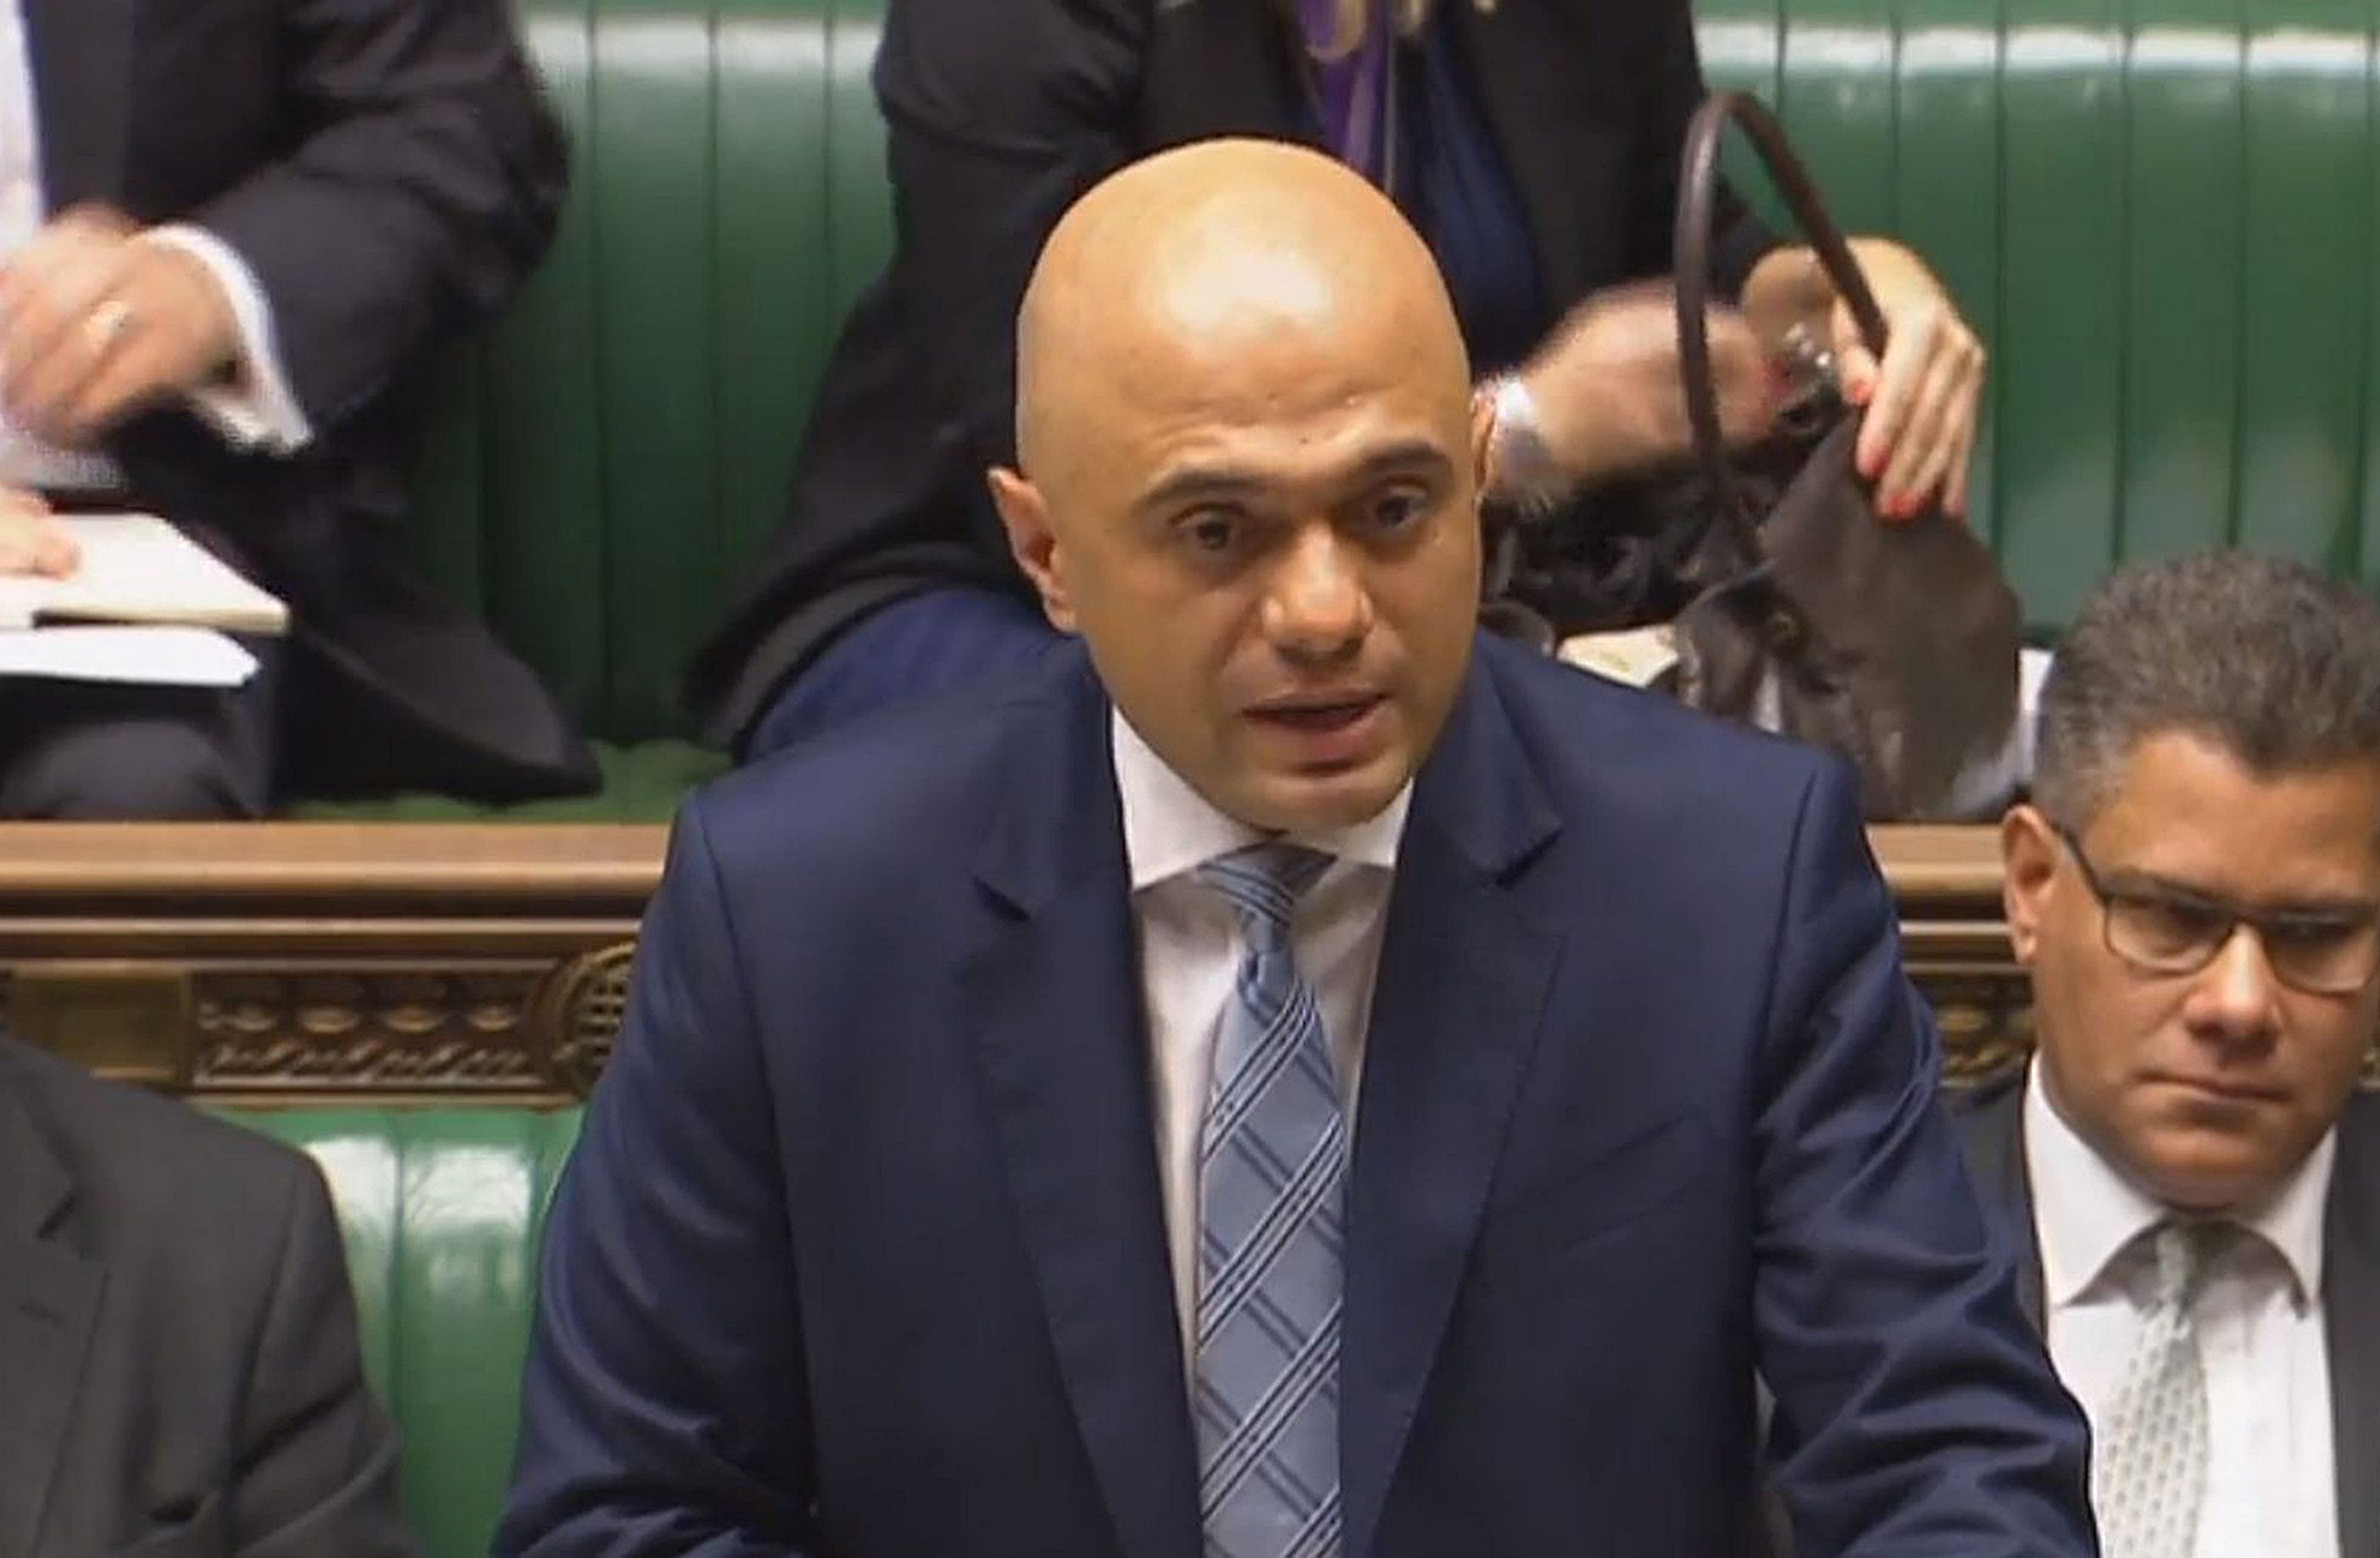 Sajid Javid was questioned in the Commons this week.